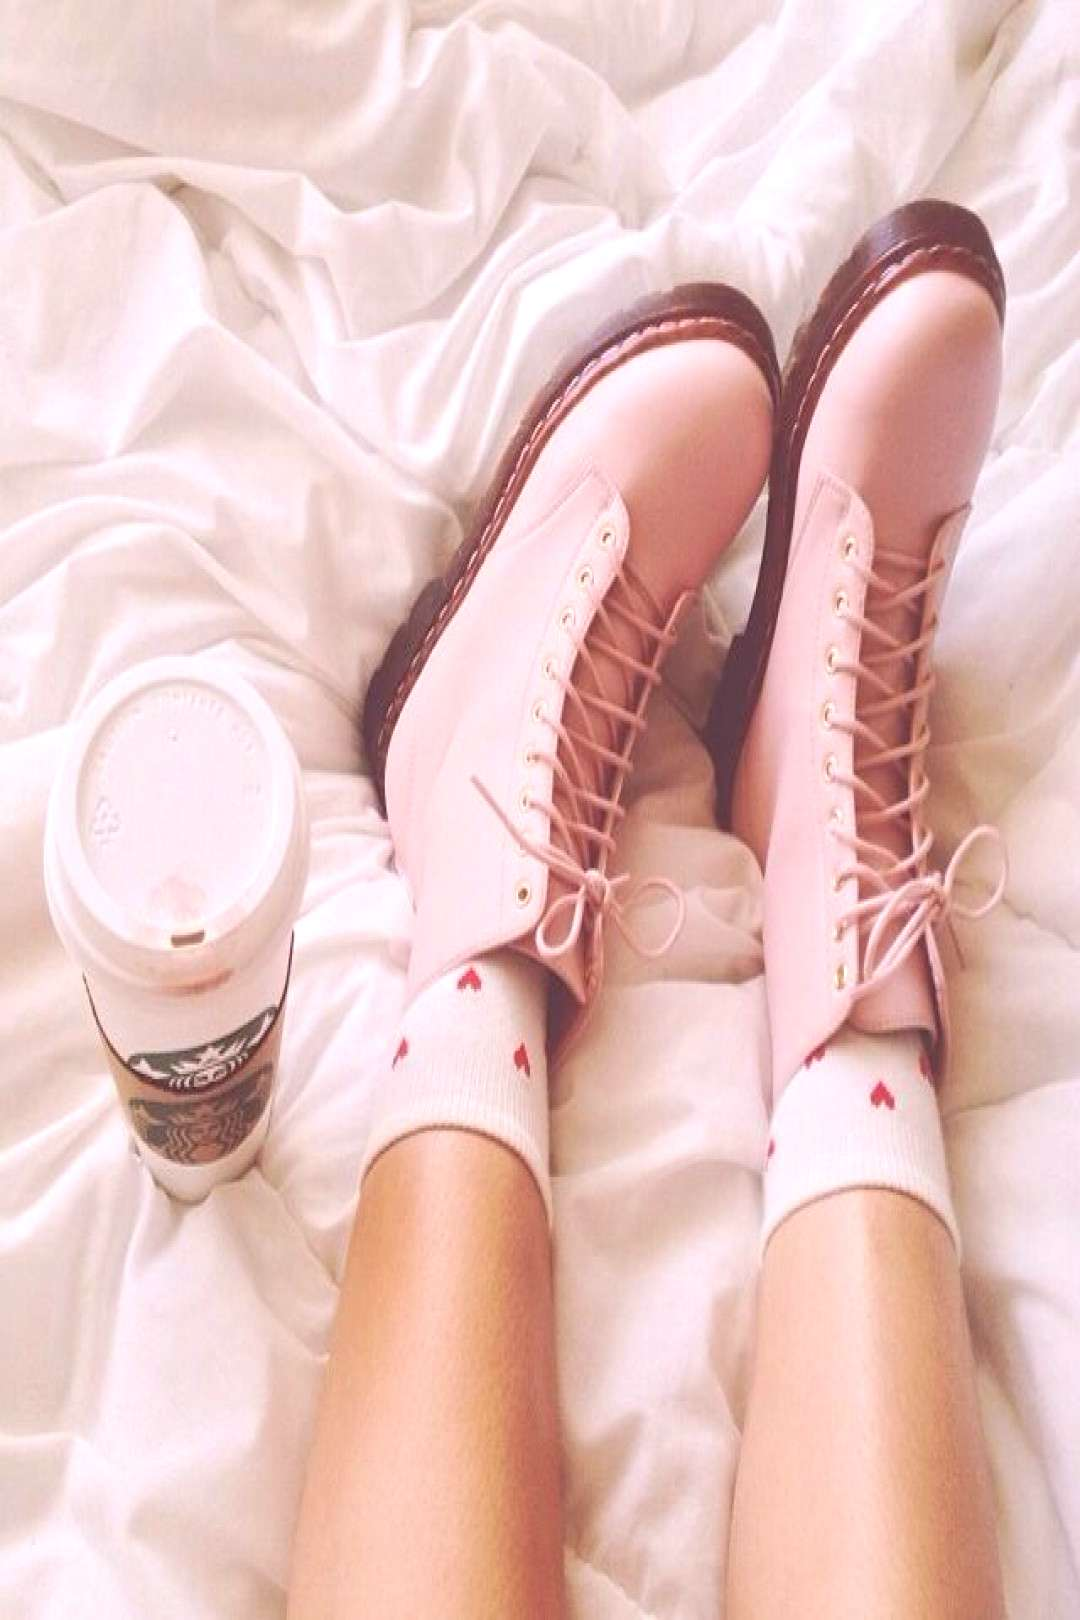 Pastel pink doc martins ?  Best Picture For  Women Jewelry watch  For Your Taste  You are lookin